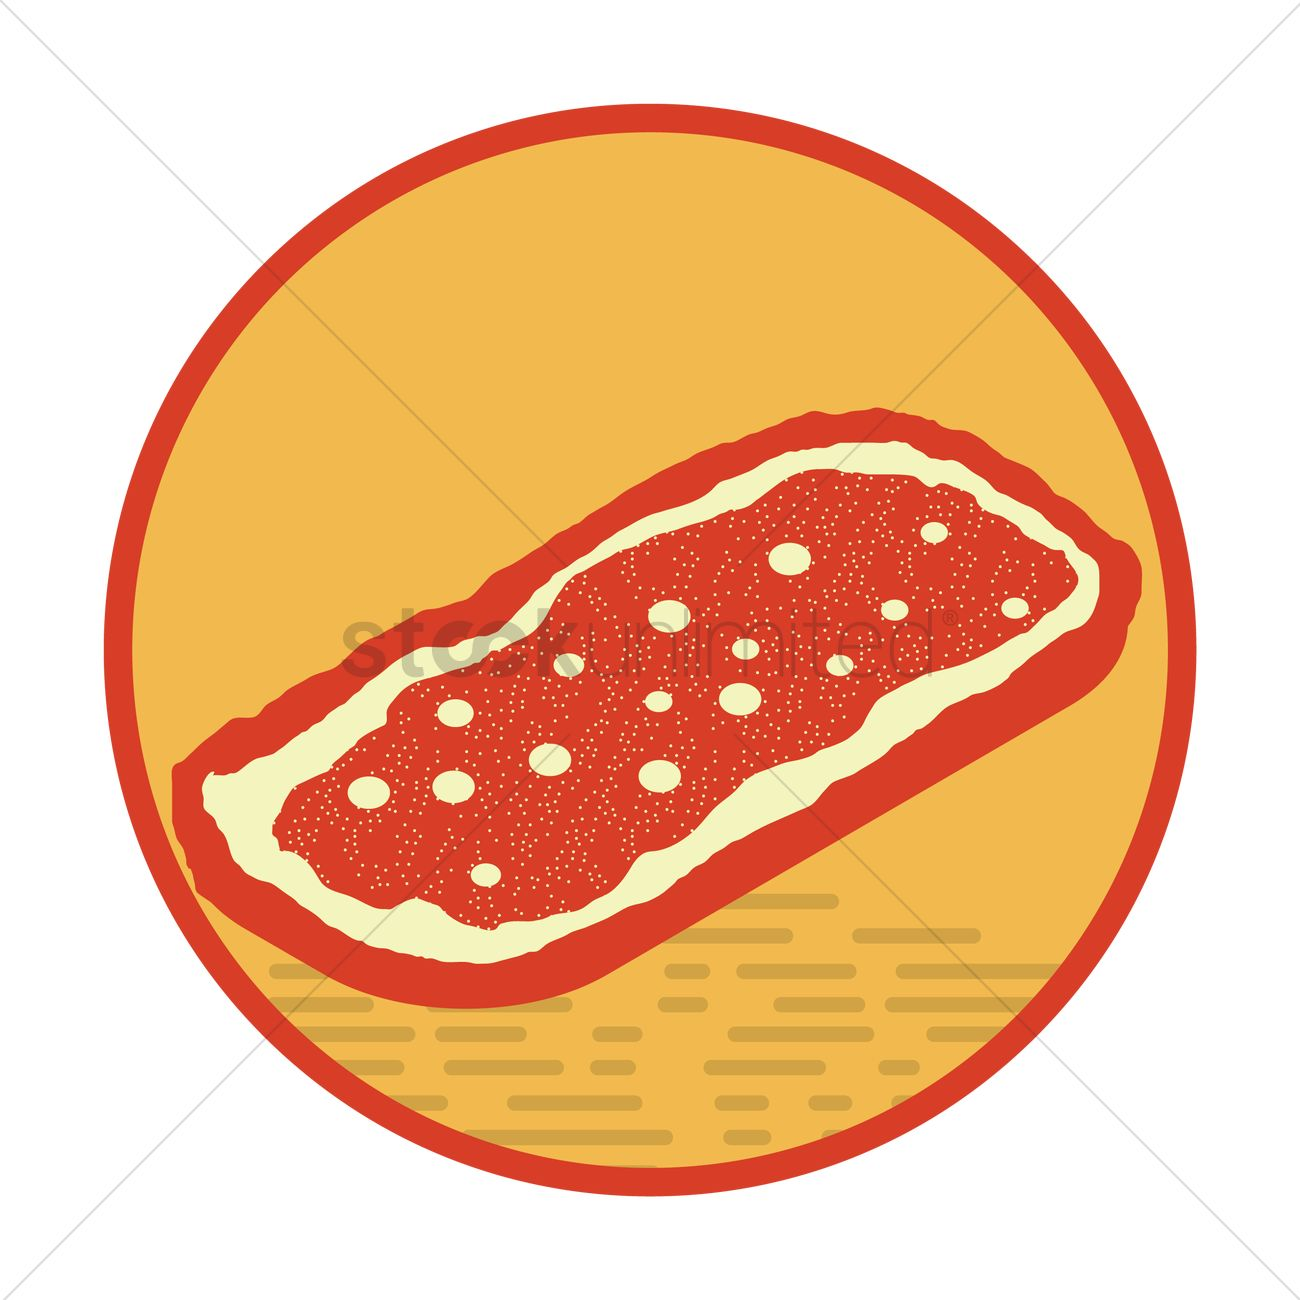 Canadian fried dough pastry Vector Image.